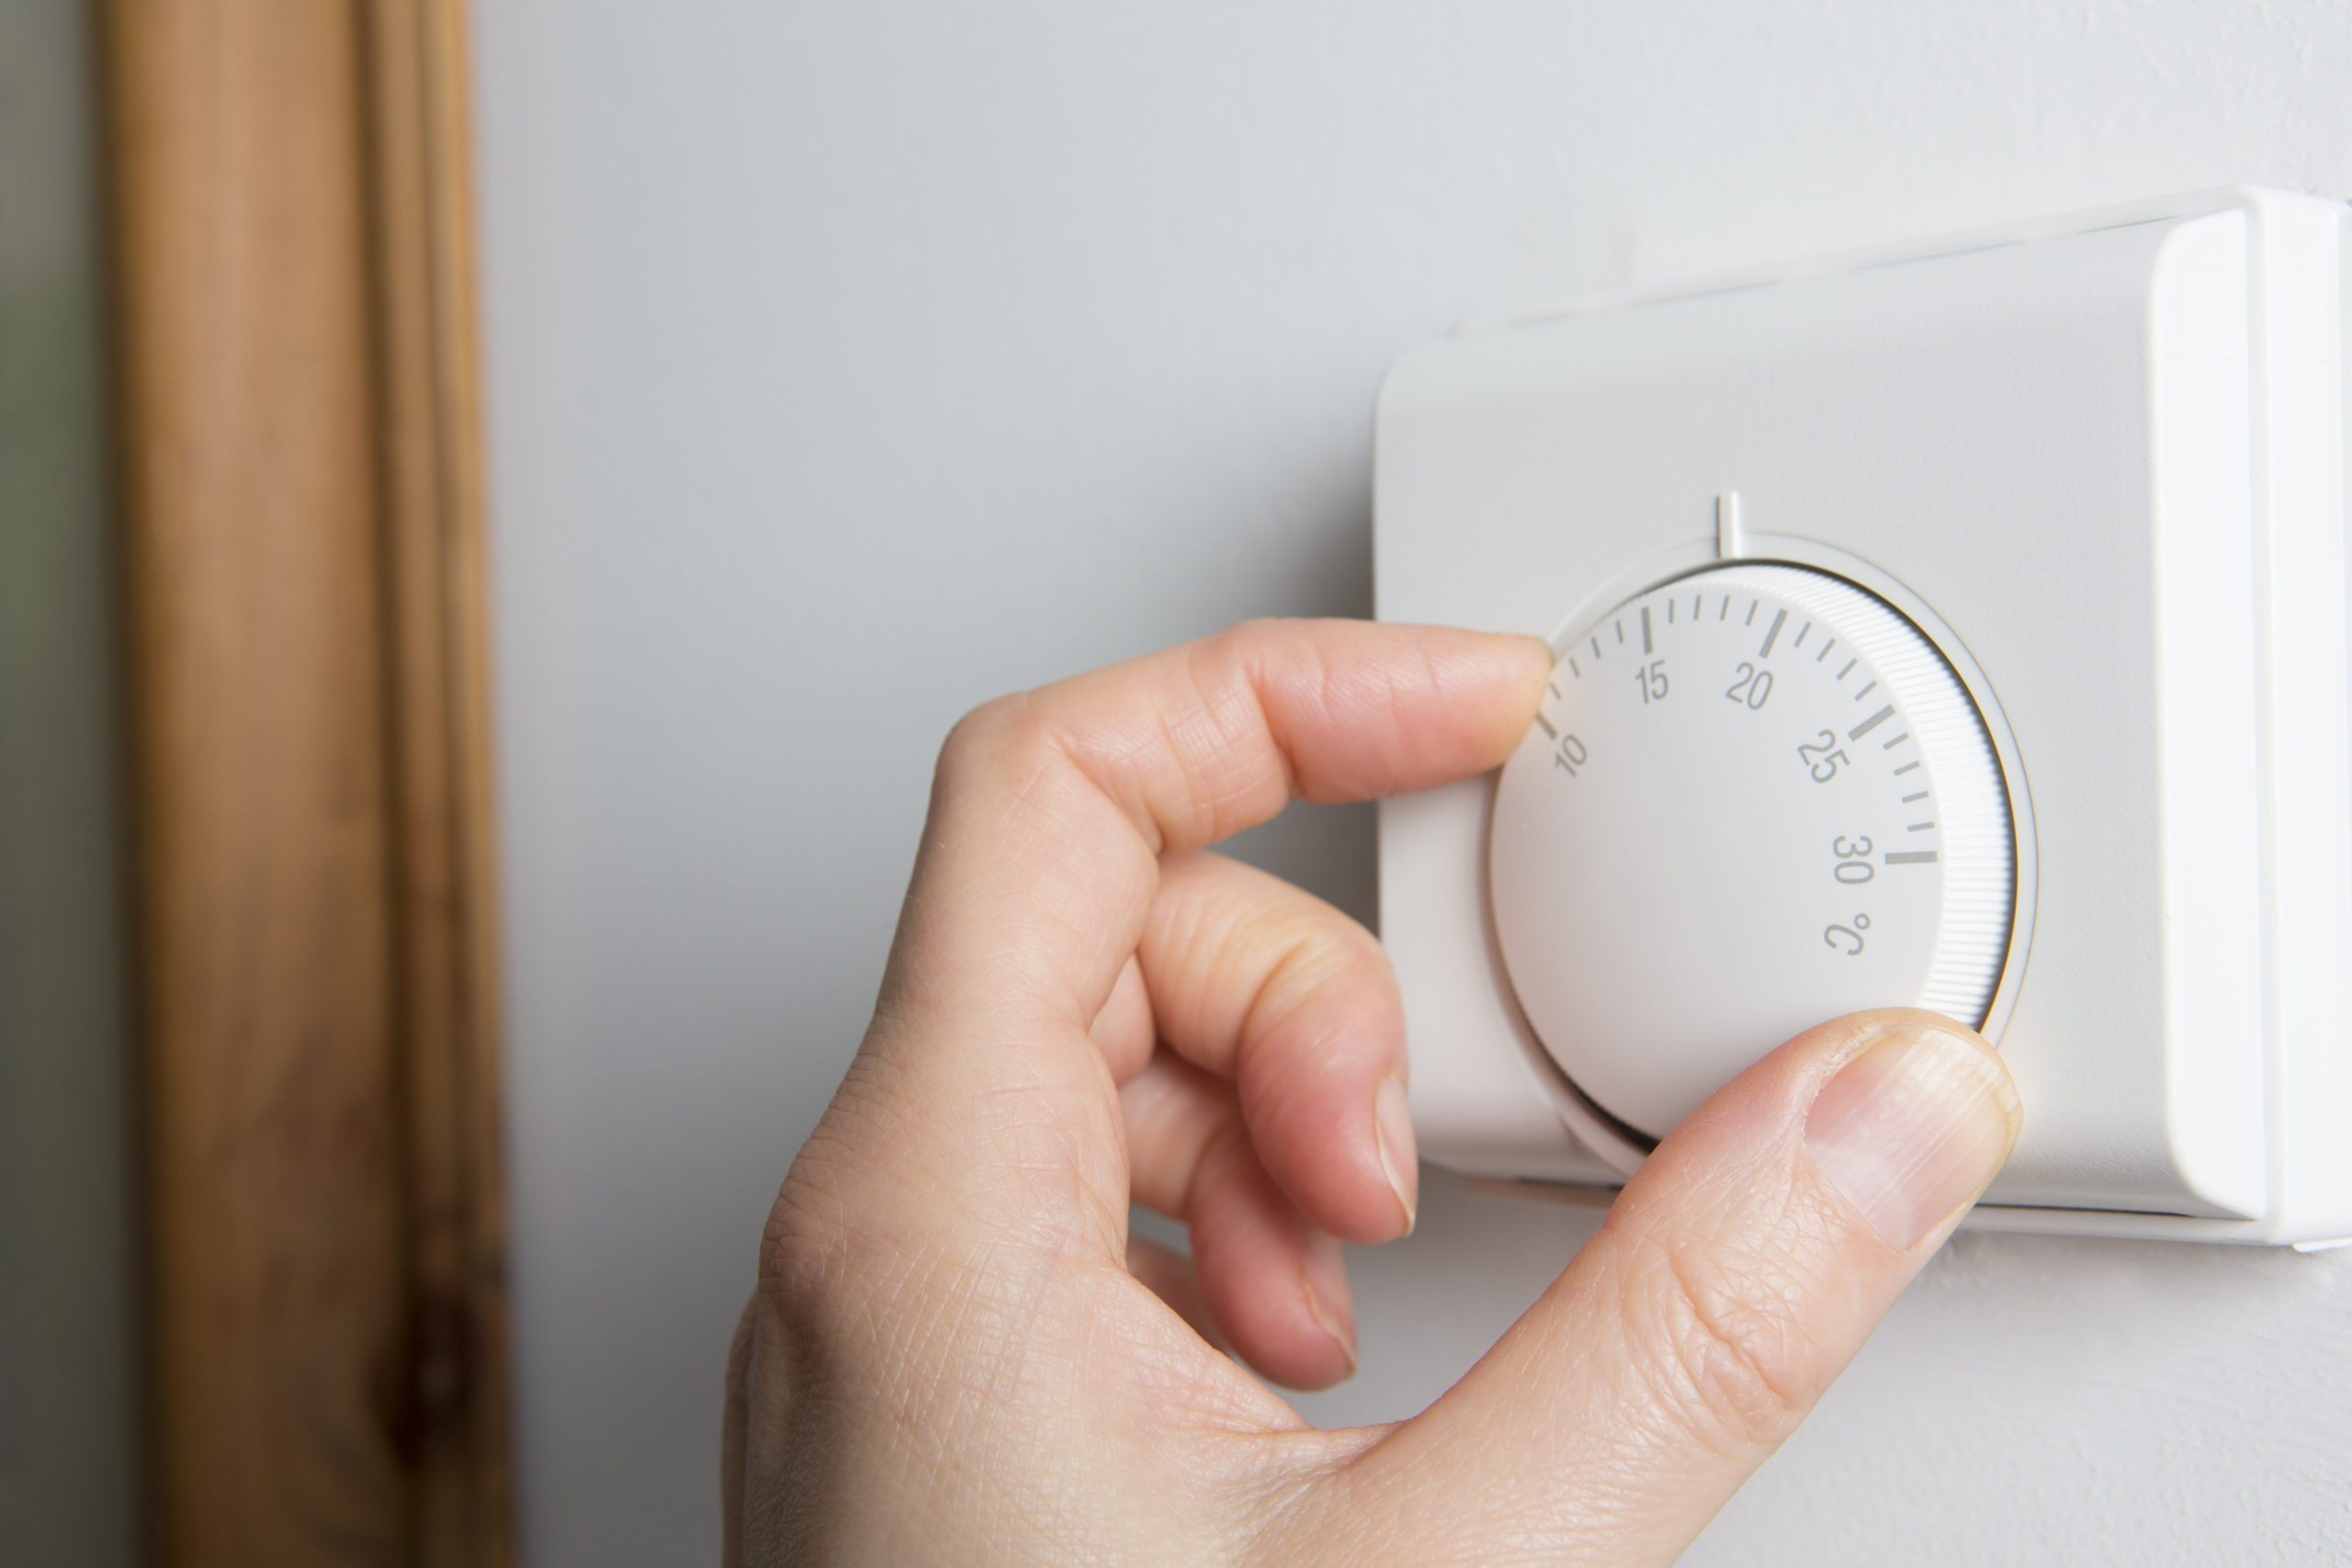 Committee launch Decarbonising heat in homes inquiry